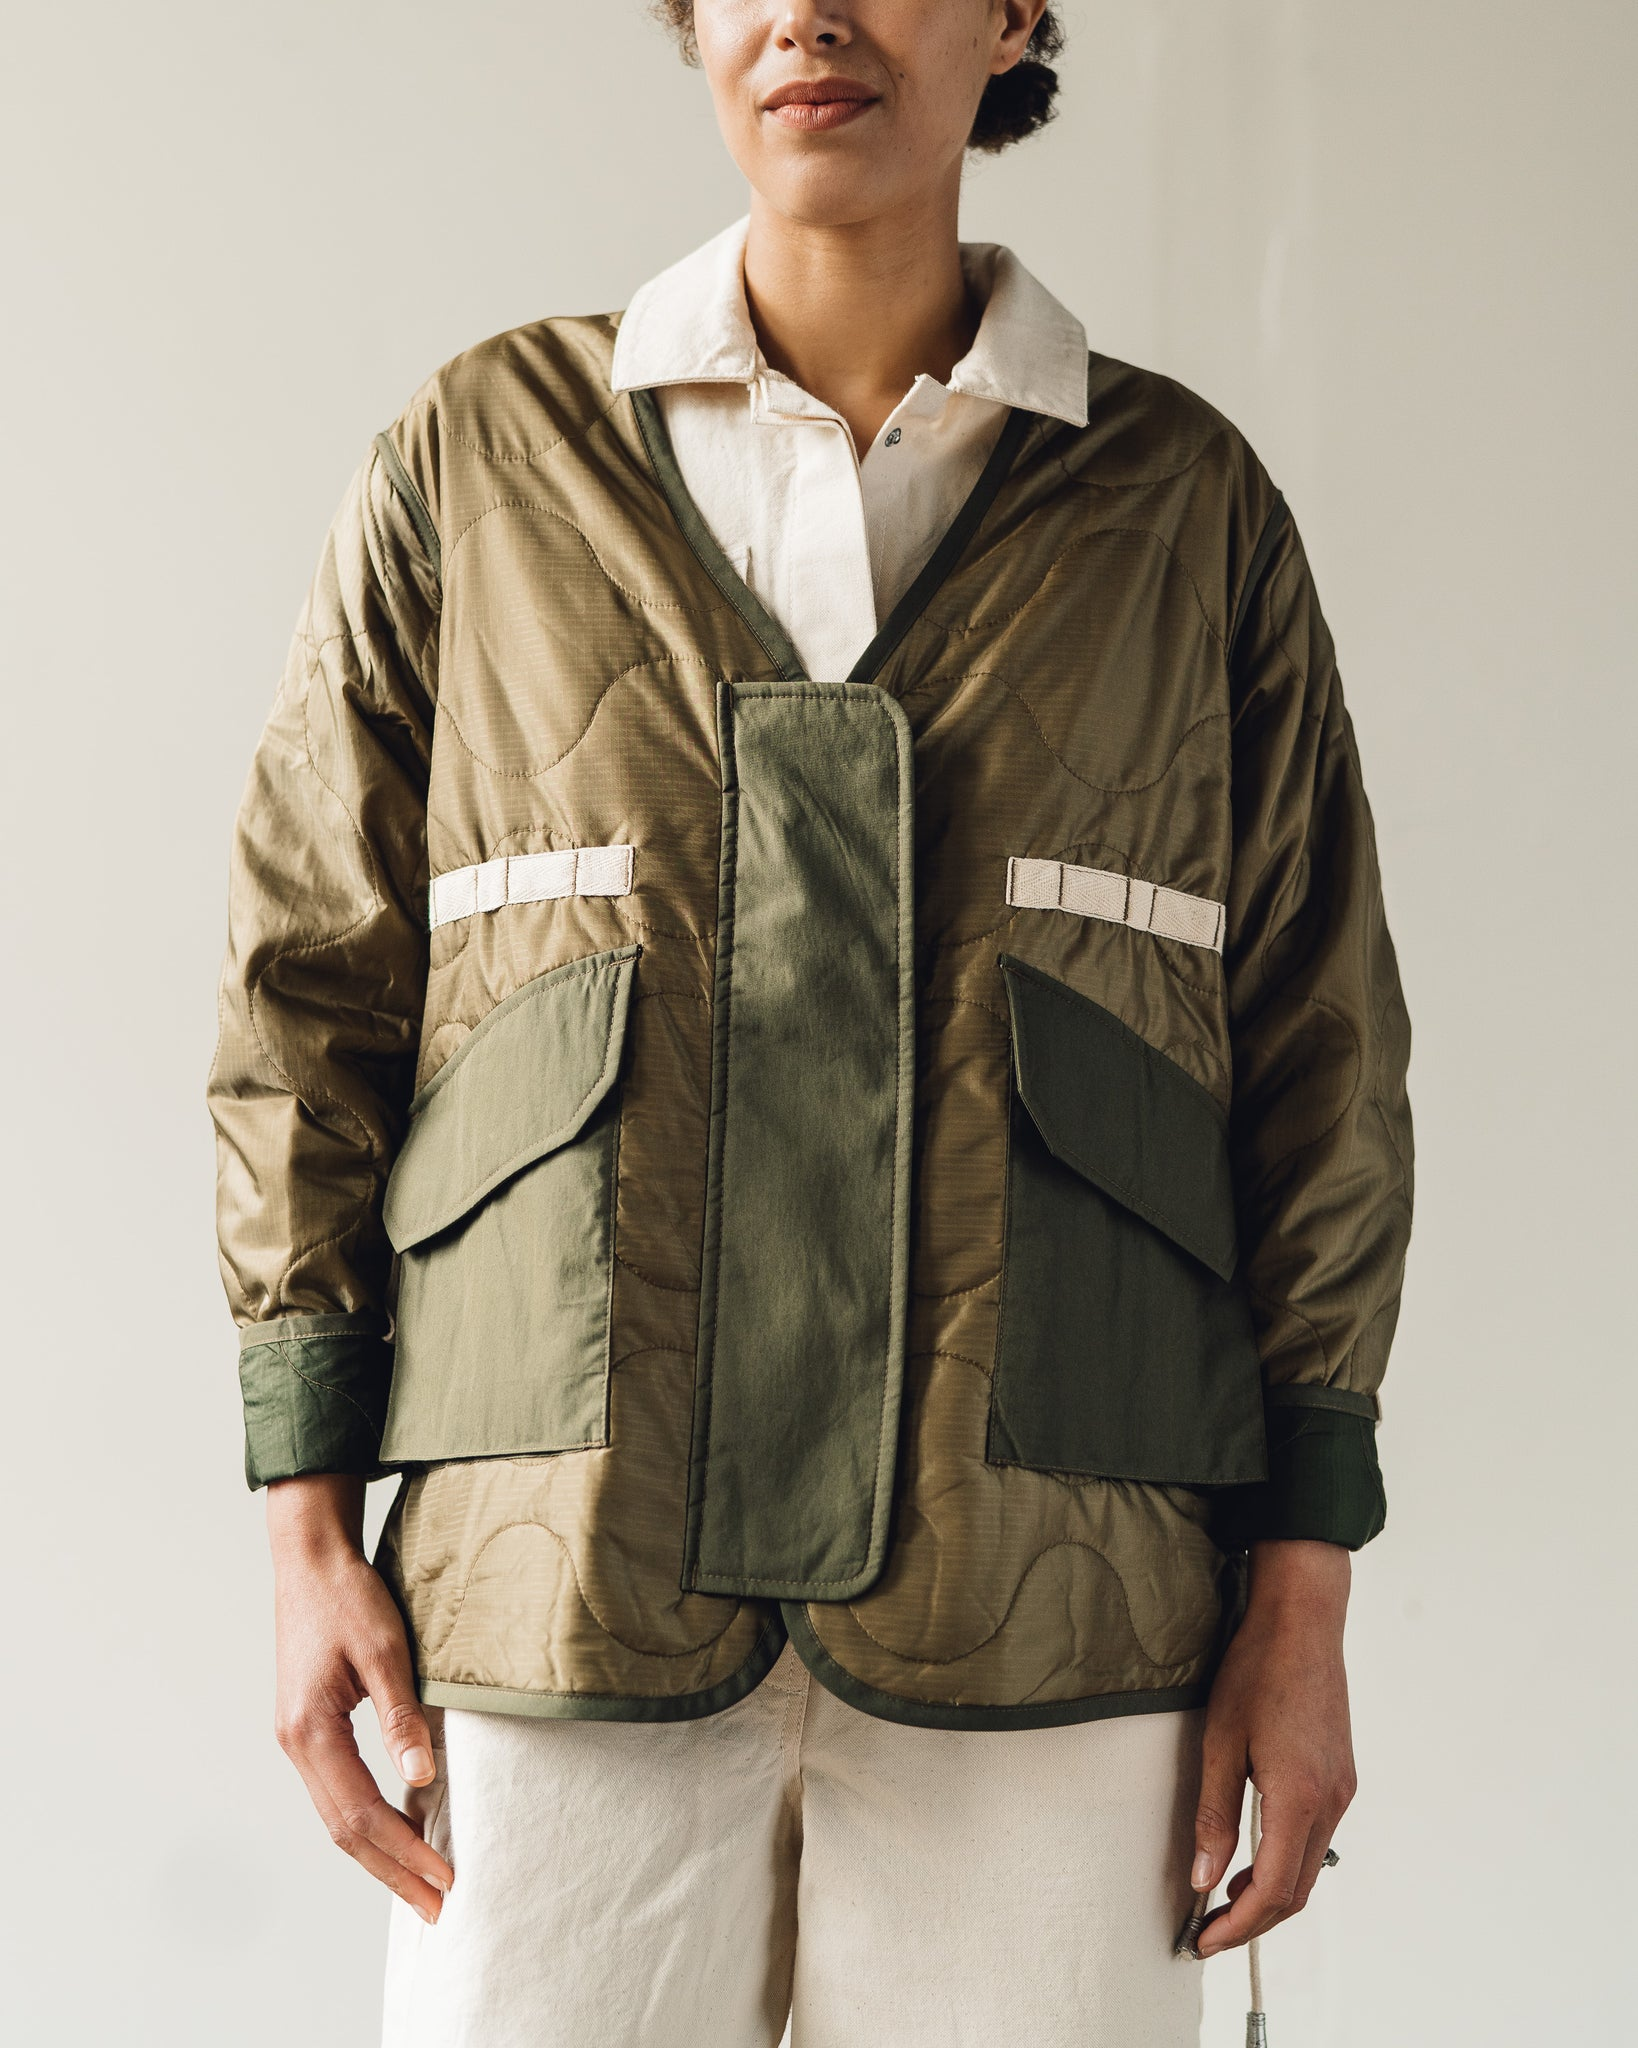 W'menswear Tropical Flight Jacket, Beige